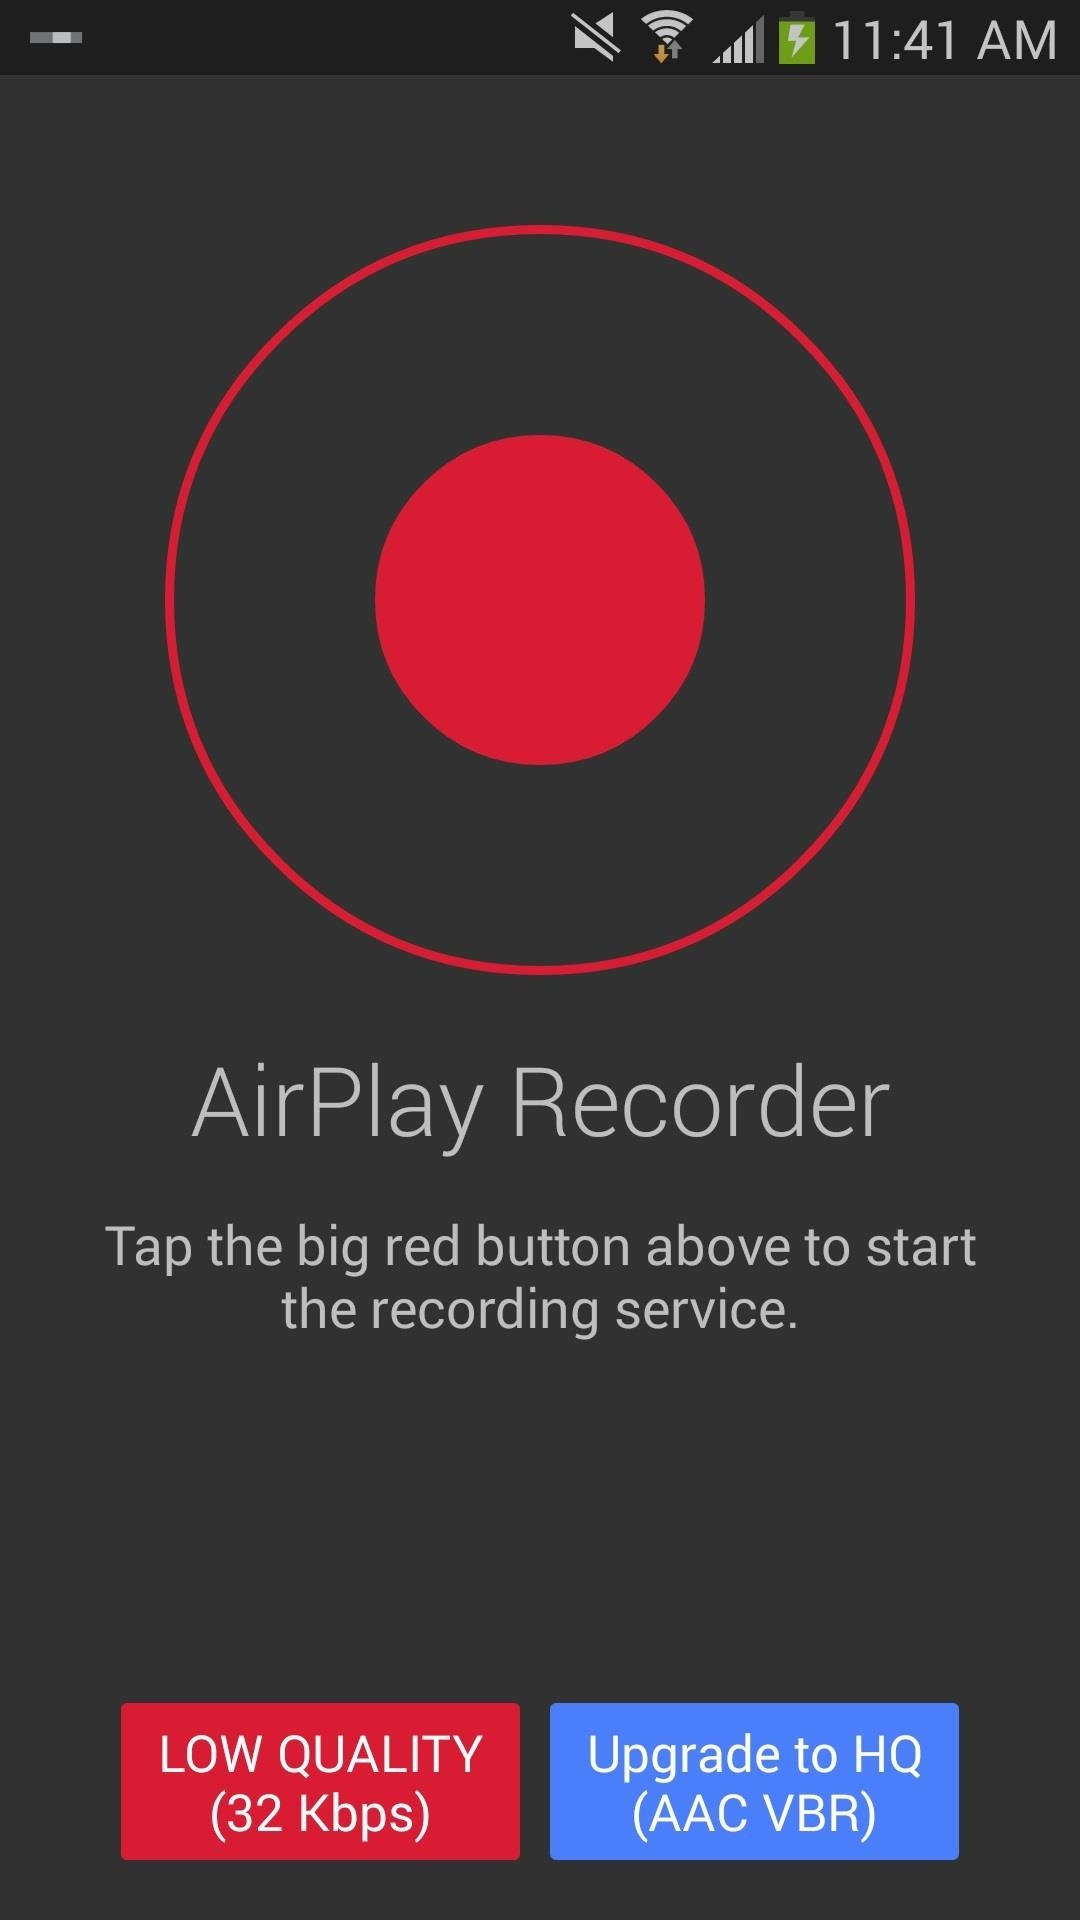 Exploit Apple's AirPlay to Record & Save Music from an iPhone to Your Samsung Galaxy Note 3